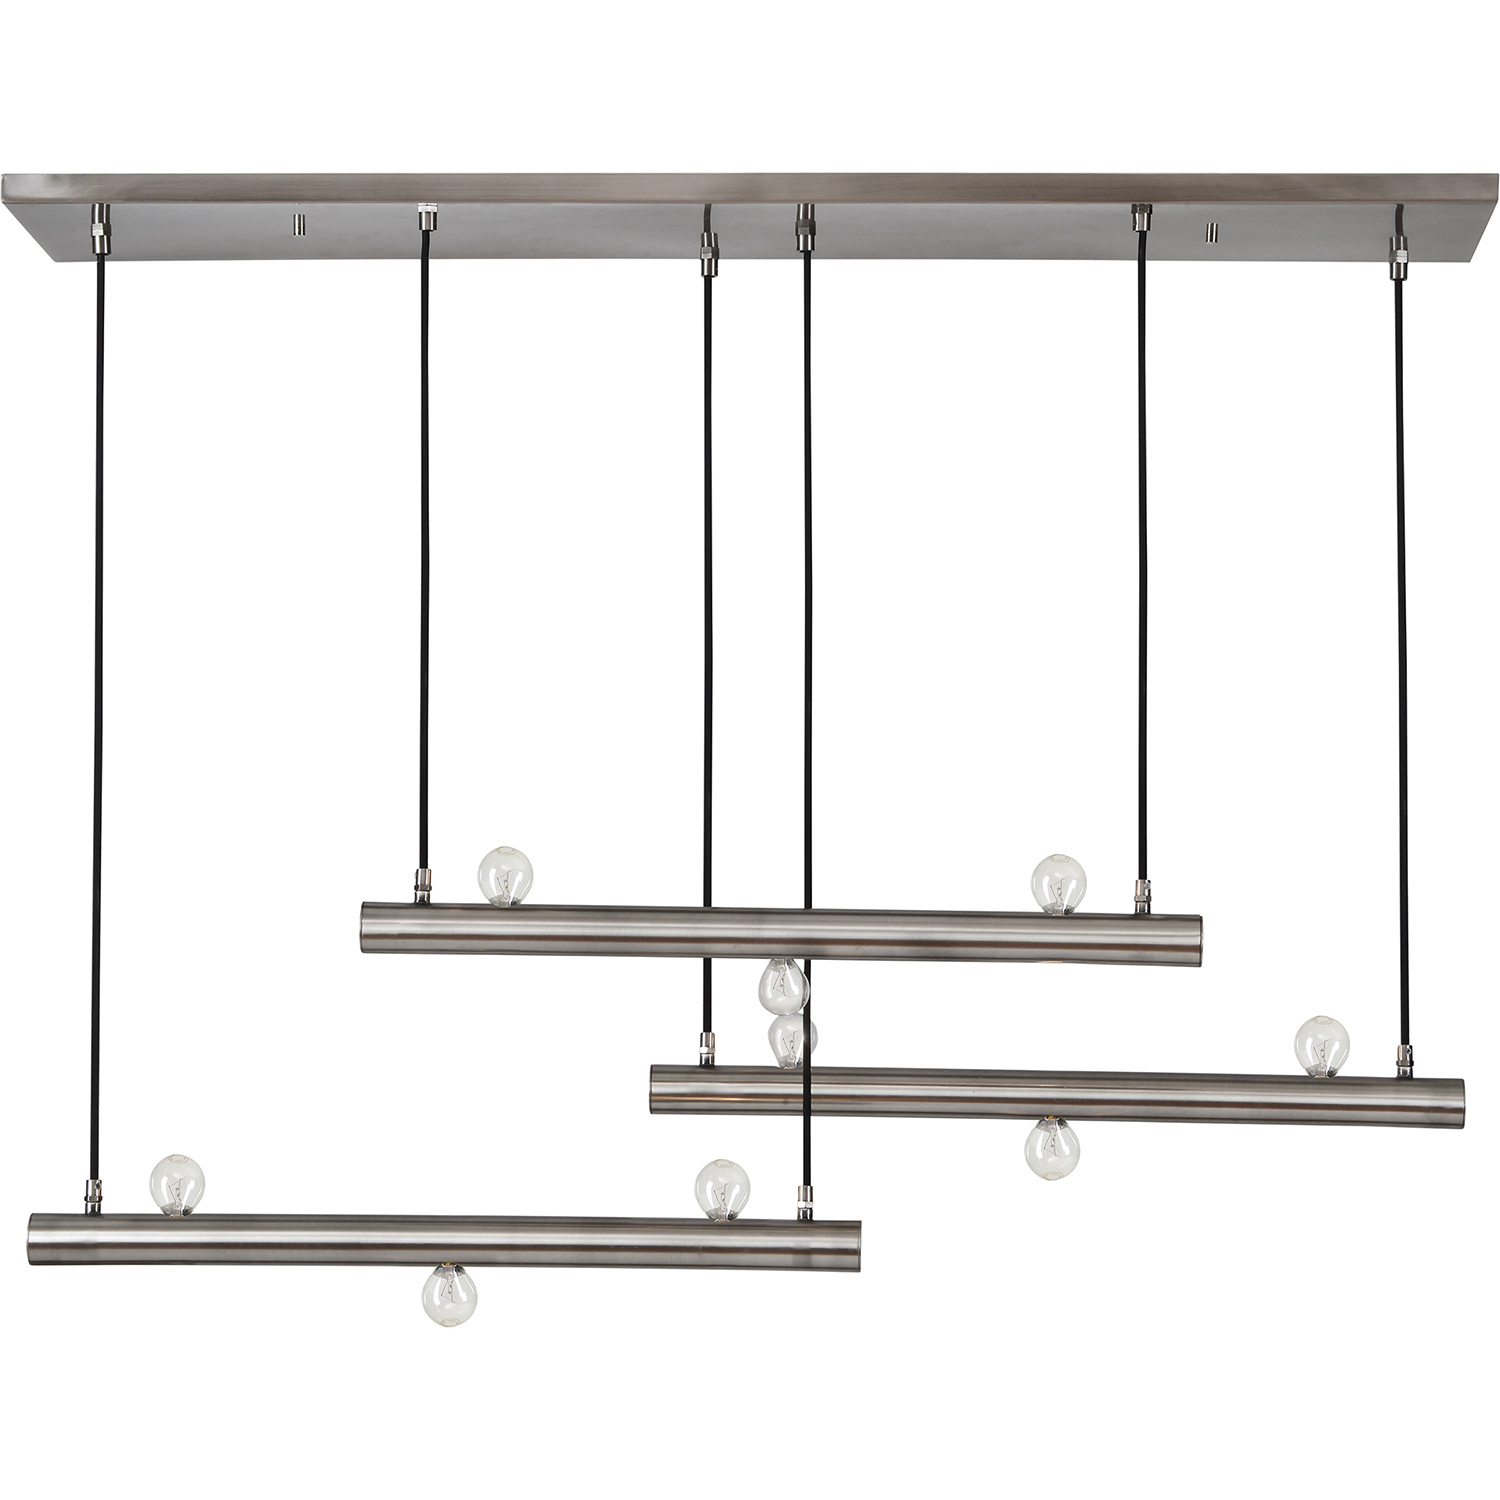 Ren-Wil Sarwood Ceiling Fixture - Pewter Plated